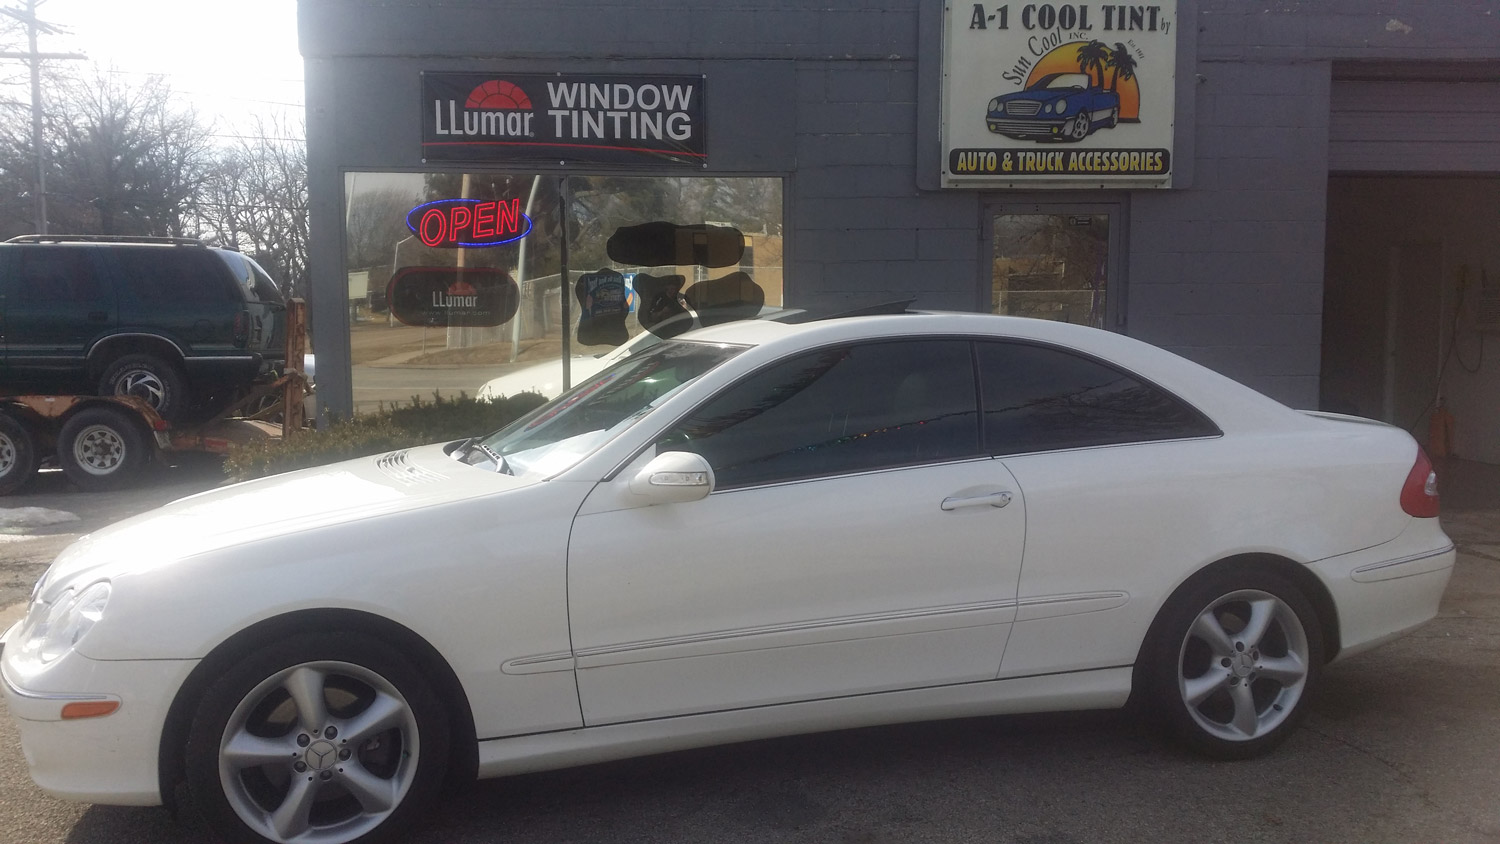 Suncool Inc, Springfield Illinois Window Tinting